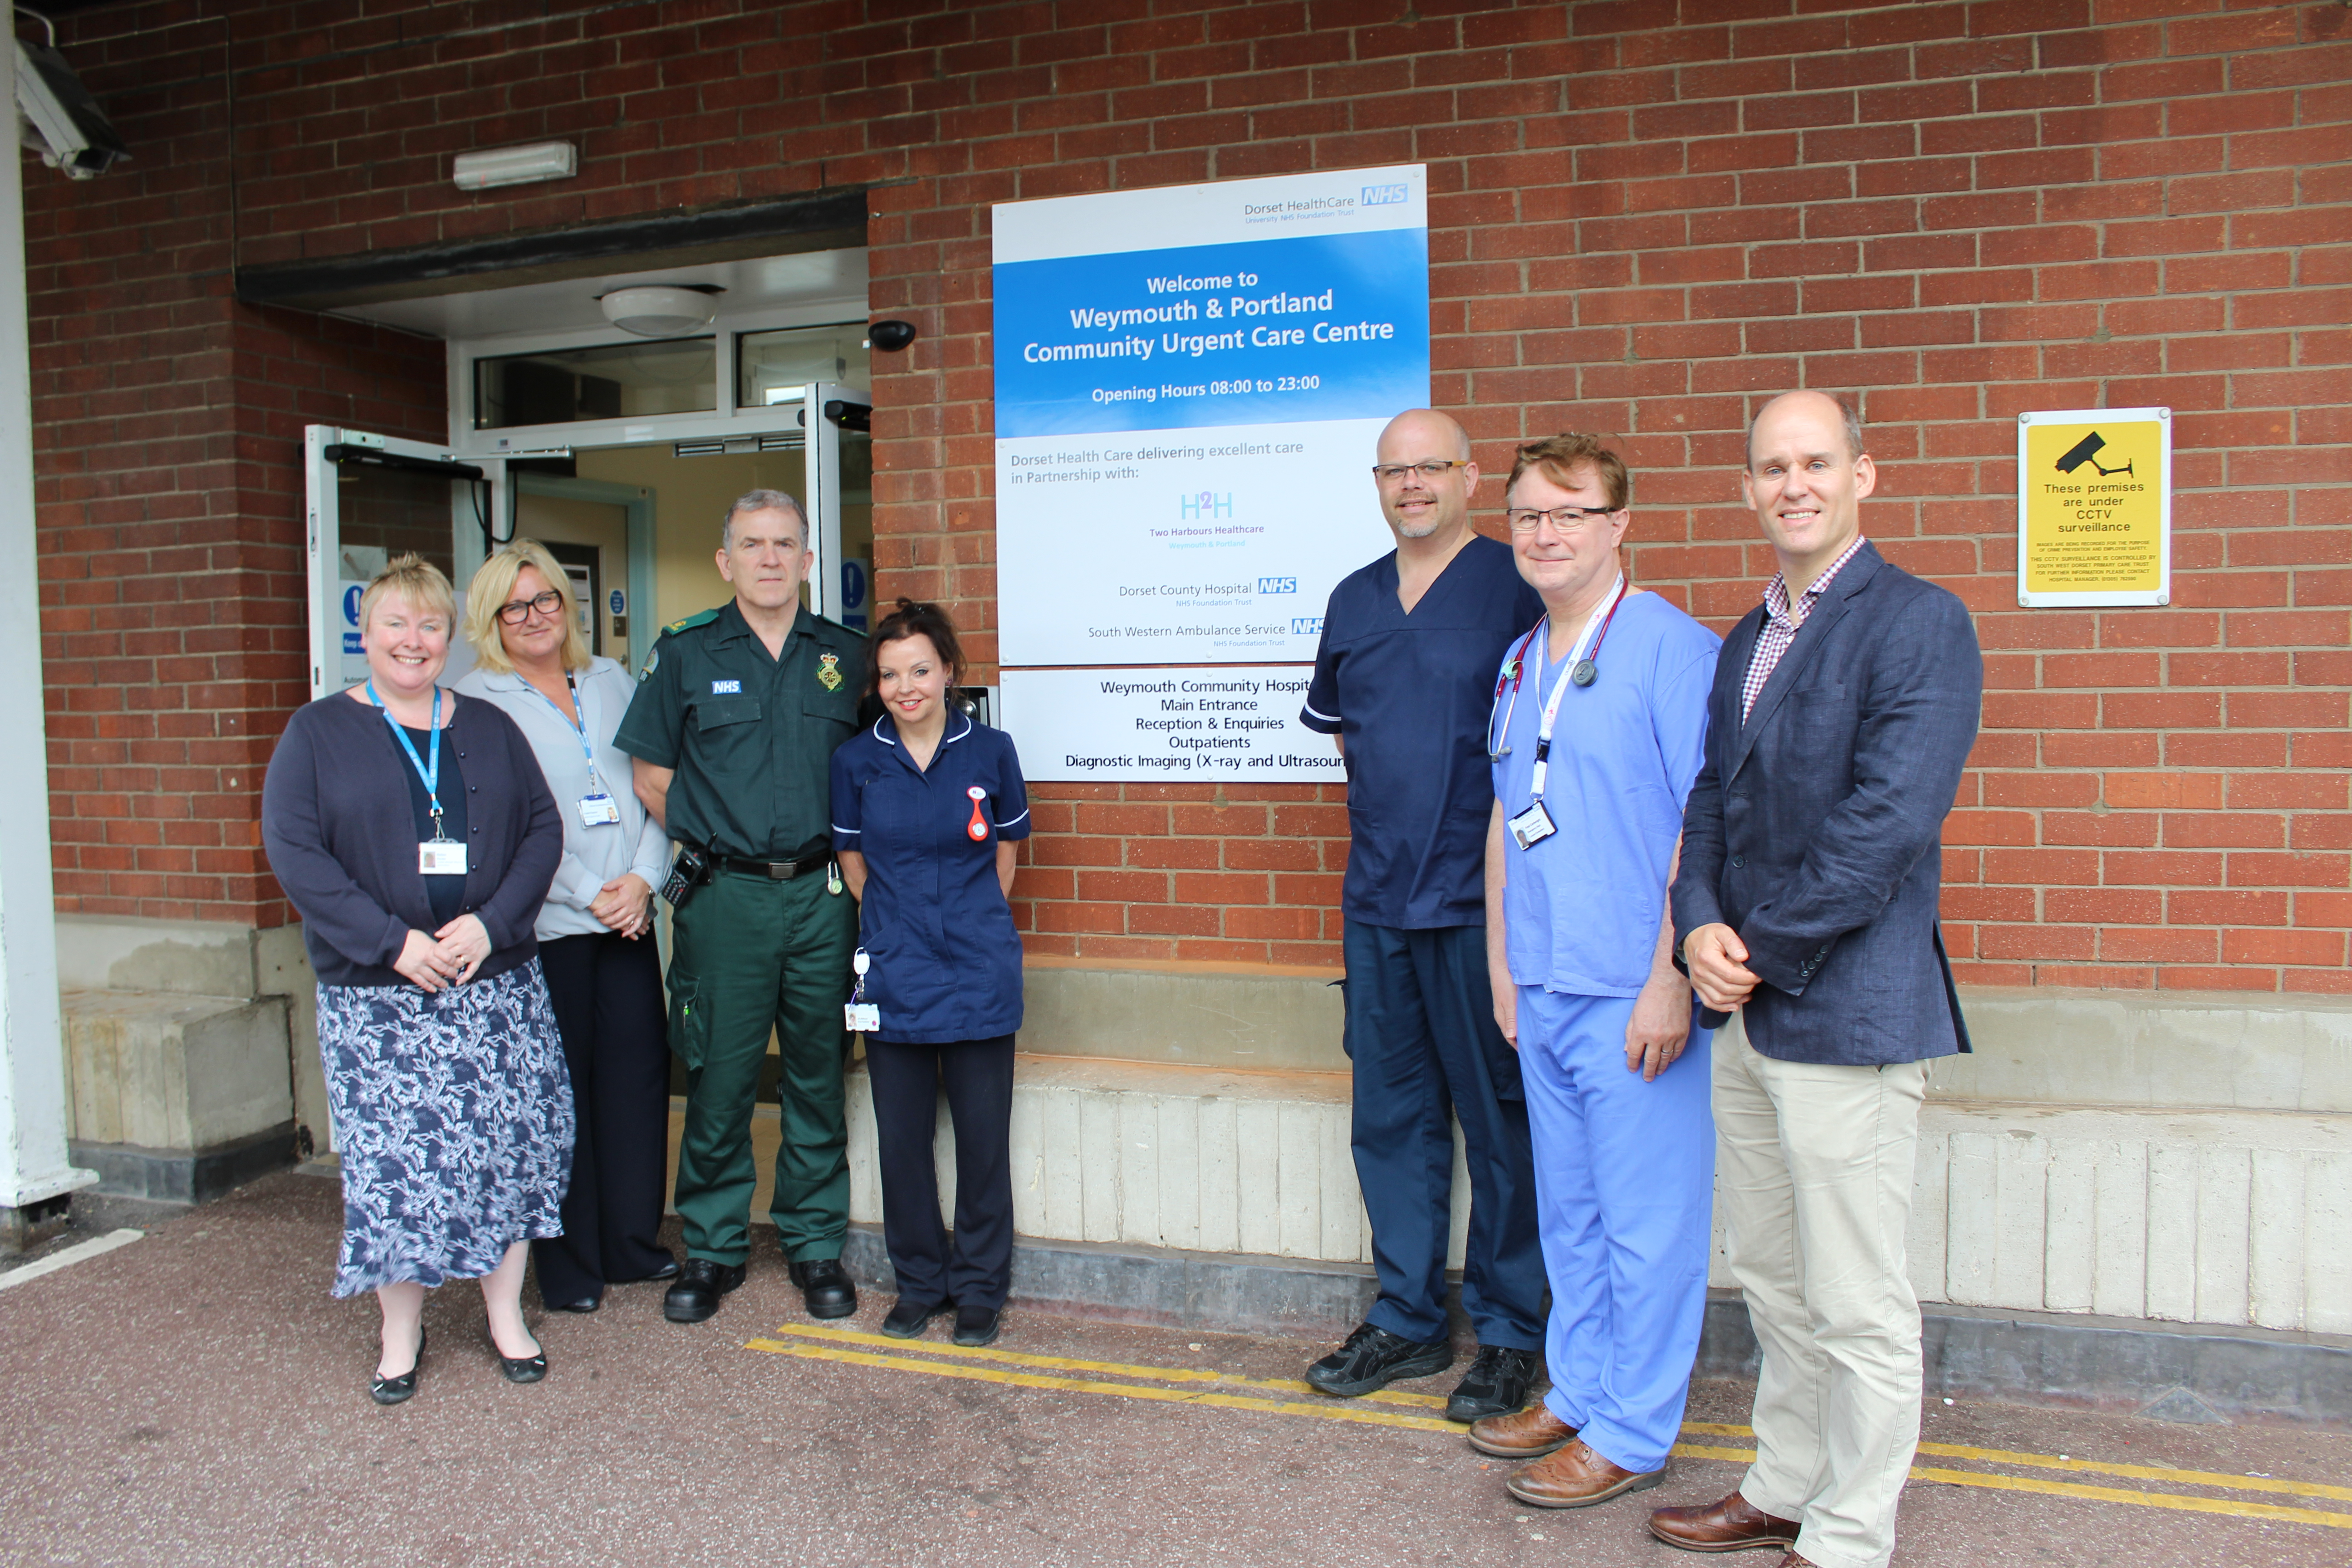 New urgent care centre opens in Weymouth this summer